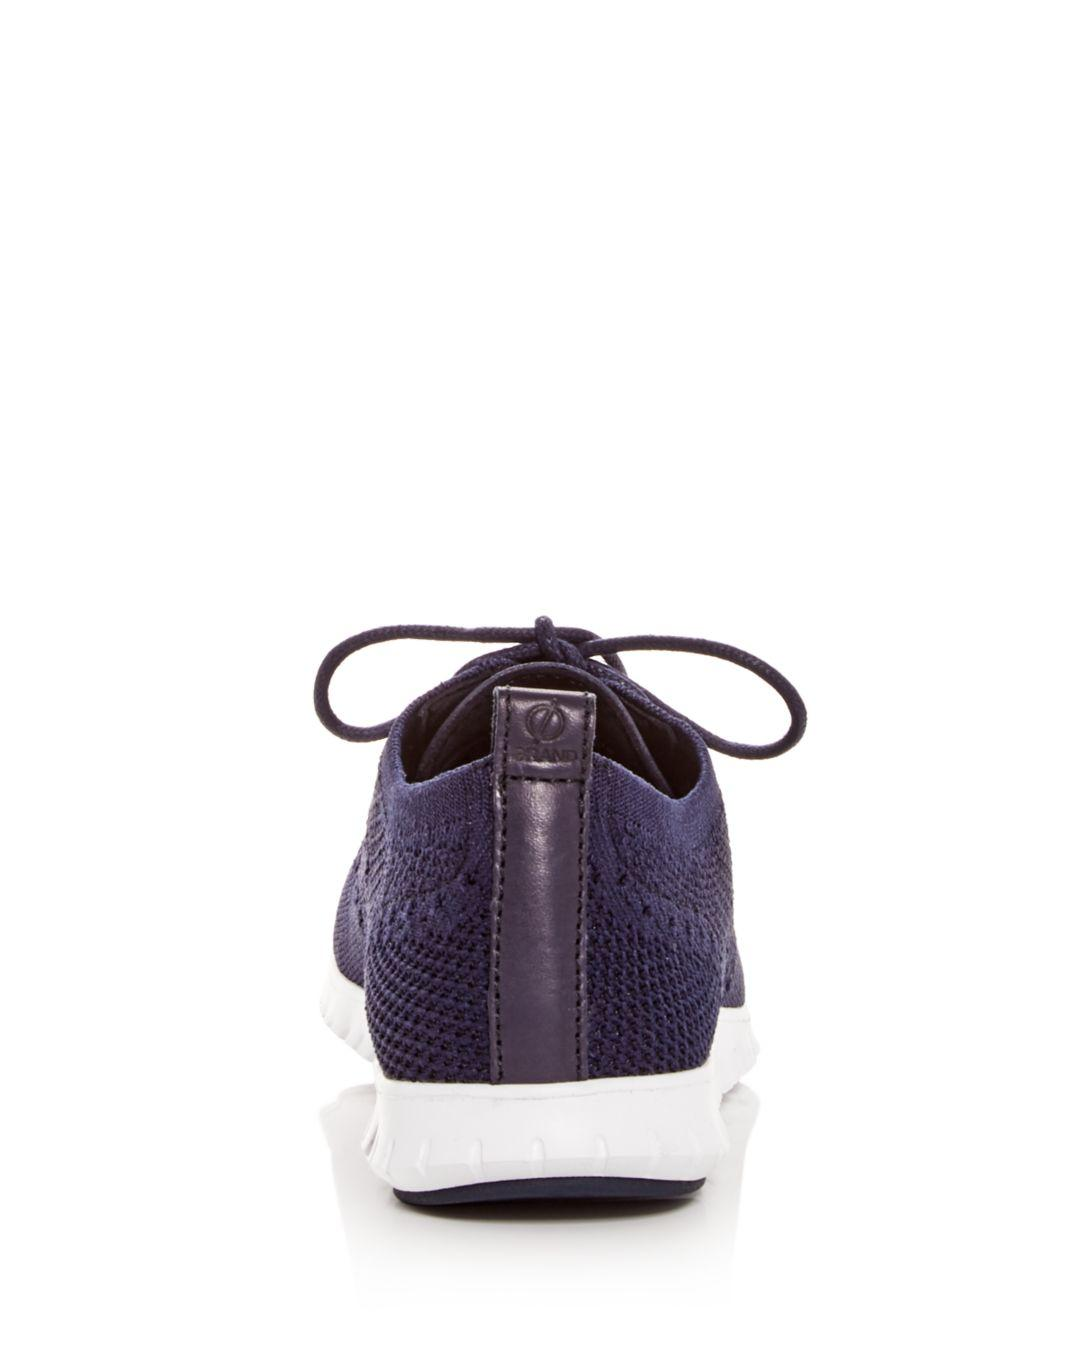 Cole Haan Women's Zerogrand Stitchlite Knit Lace - Up Oxford Sneakers in Marine Blue (Blue)